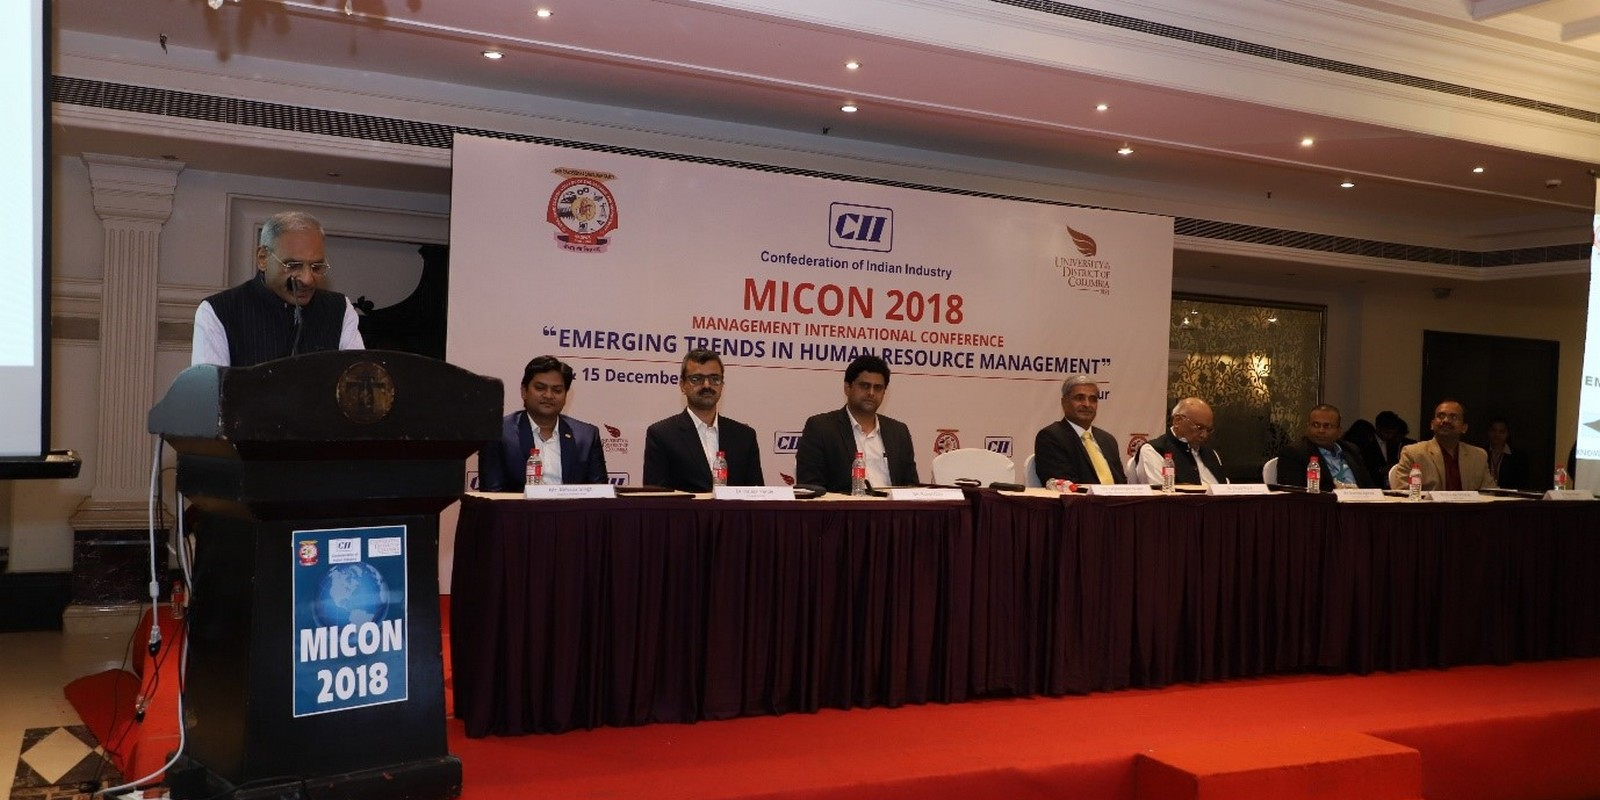 MICON-2018 International Conference.